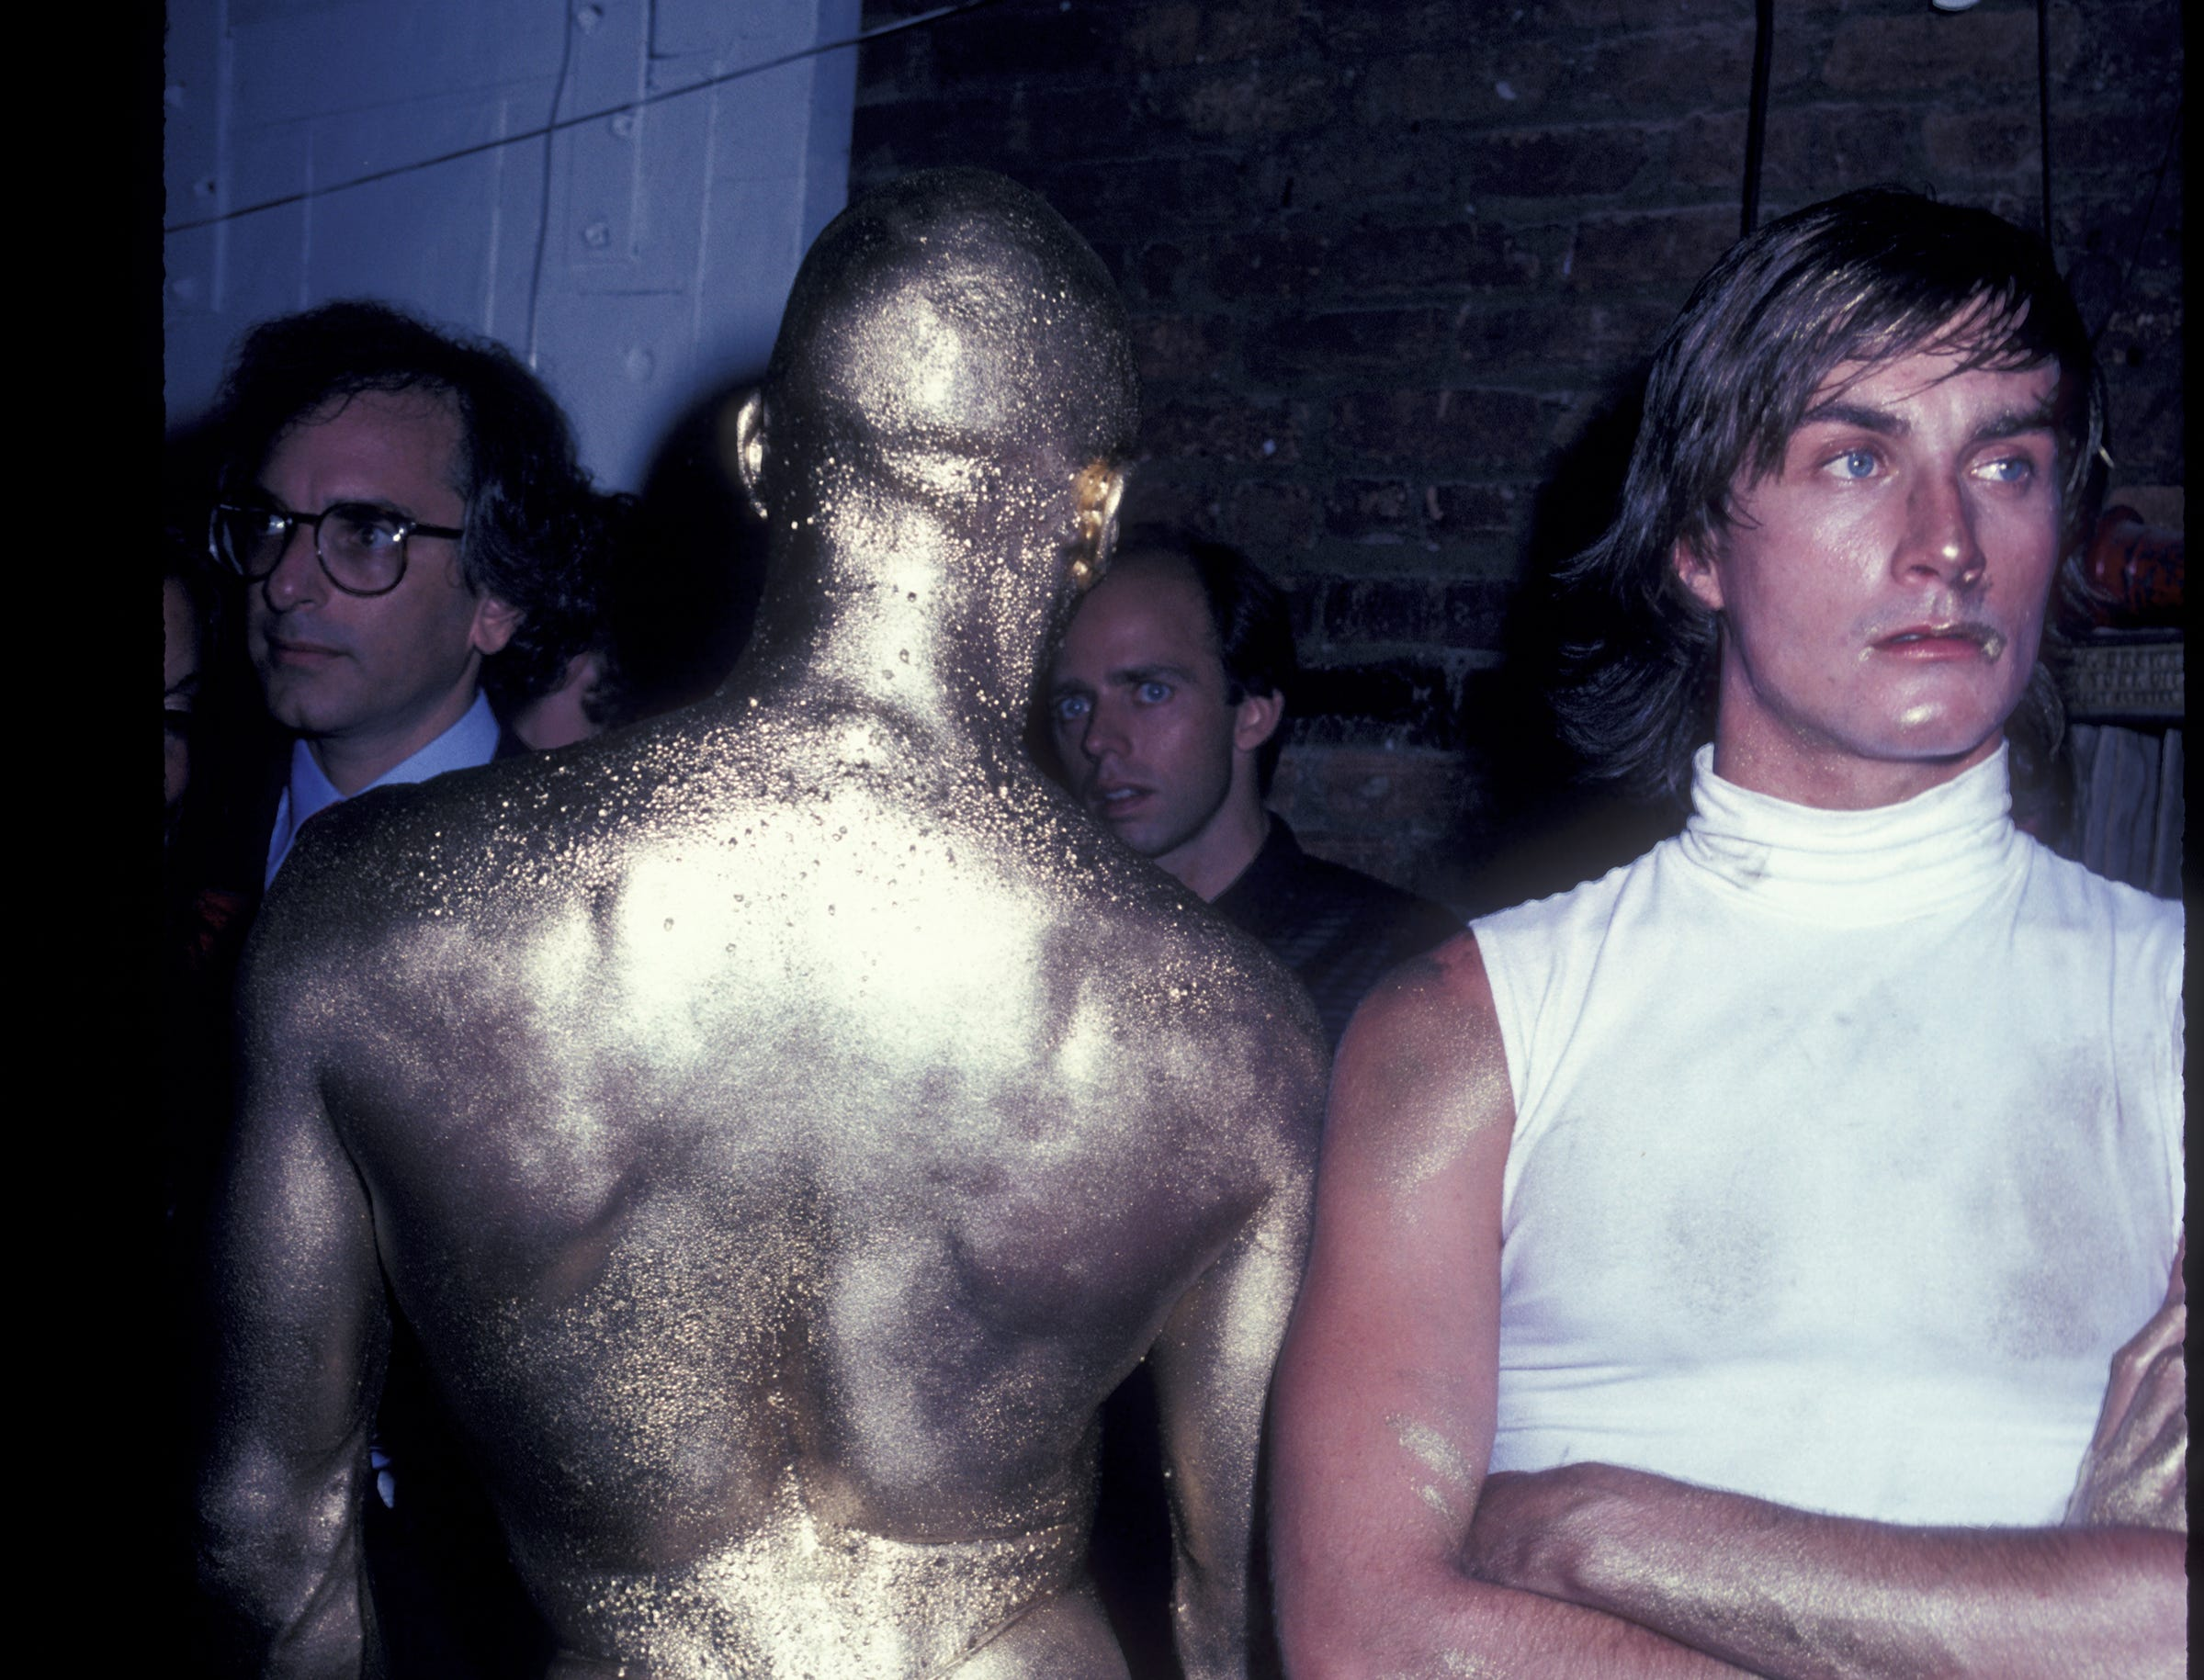 Sometimes, the golden era of disco partying was truly golden.